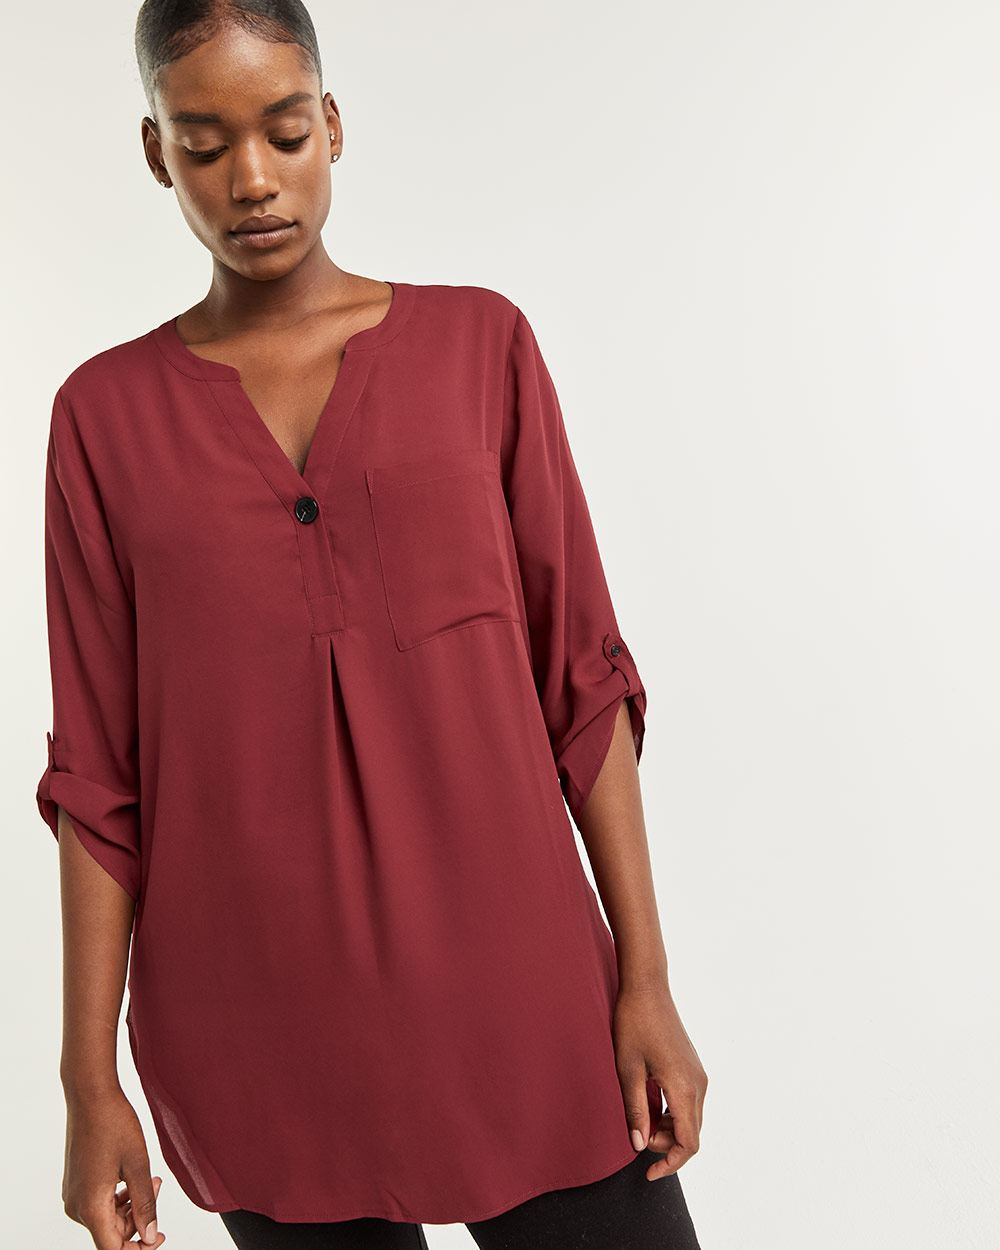 3/4 Sleeve Tunic with Chest Pocket